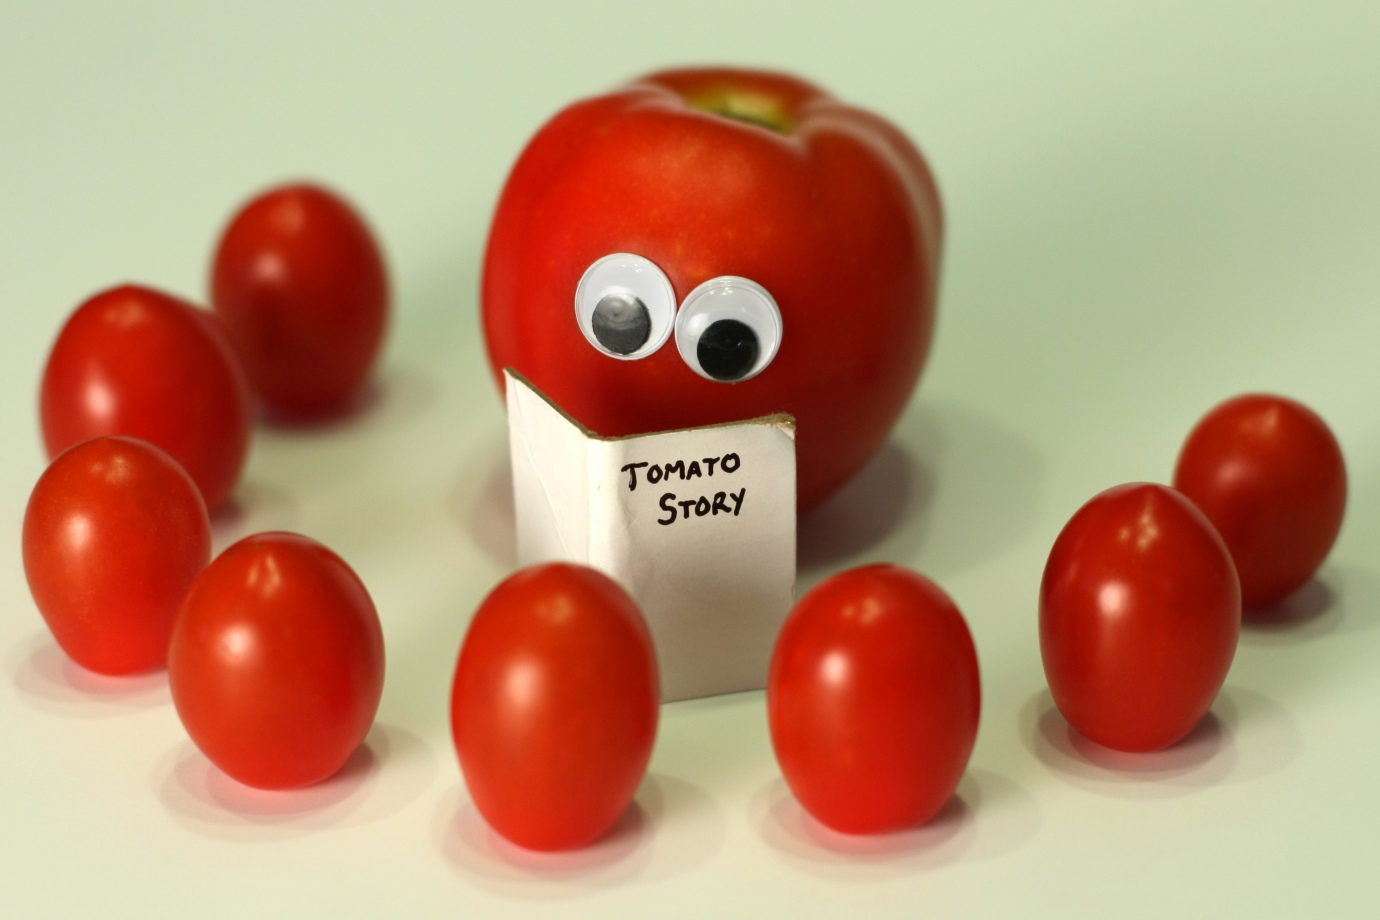 Tomato Story by jeffsmallwood, on Flickr http://www.flickr.com/photos/jeffsmallwood/4740428924/ Shared under a CC-BY-NC-2.0 license